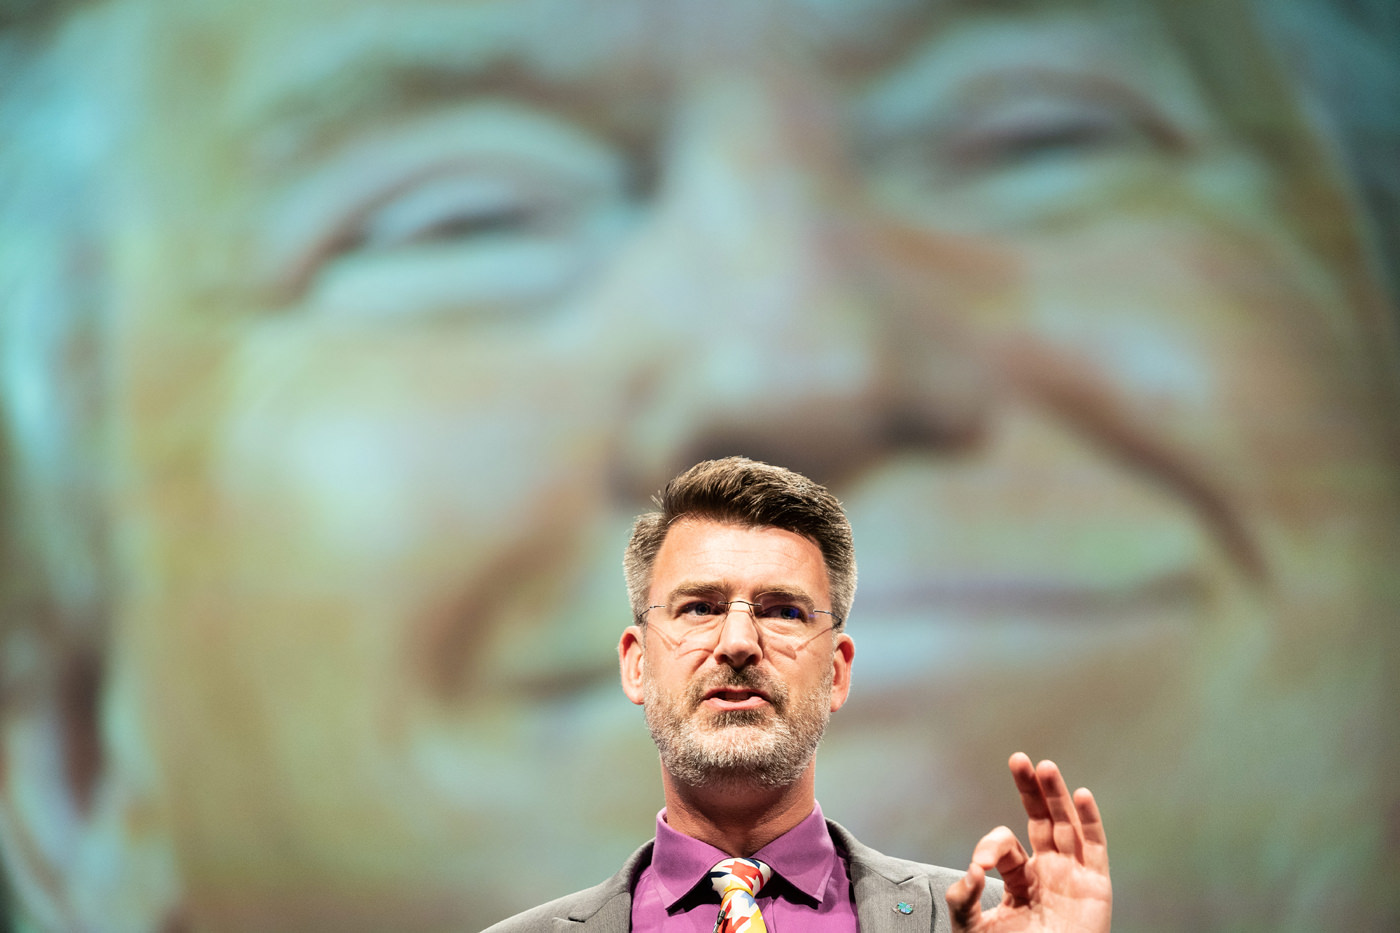 Peter Zeihan presents ​The New World (Dis)Order at CFA Annual Conference 2019 Trump projected behind him